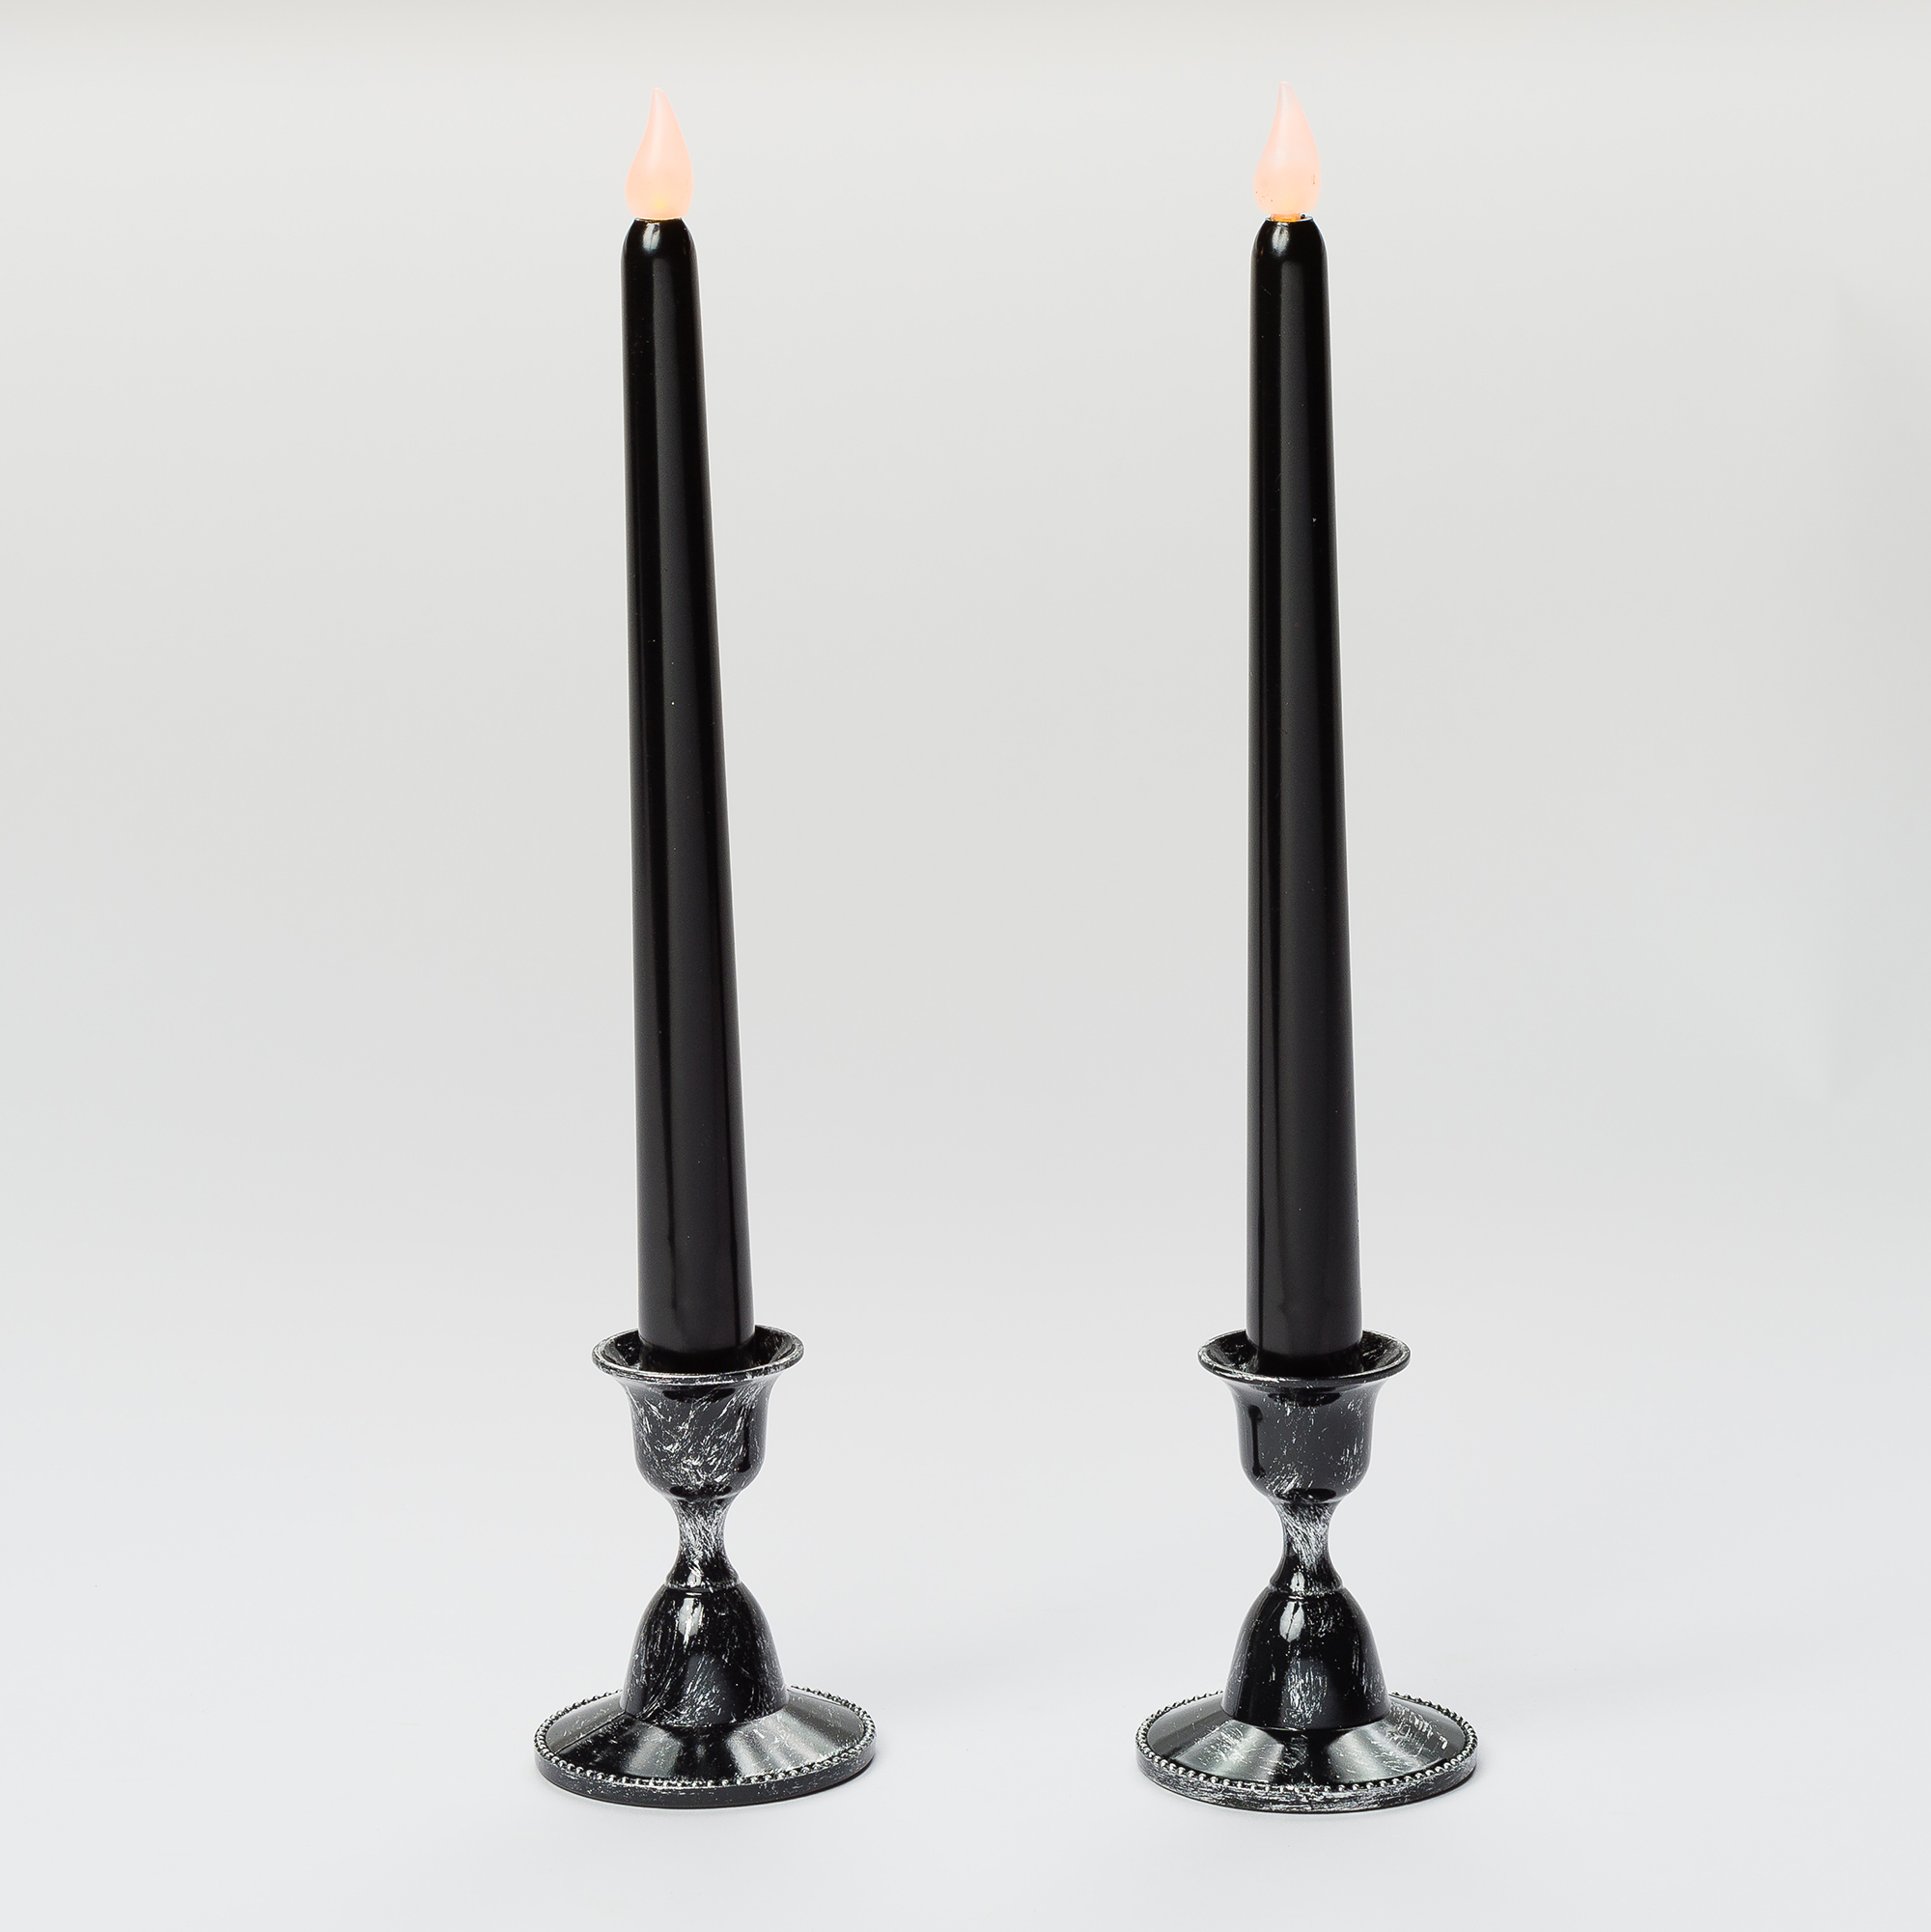 Mr. Light Pair of Black Spooky Tapers with Dark Holders and Built-in Timers - Size 10.25""